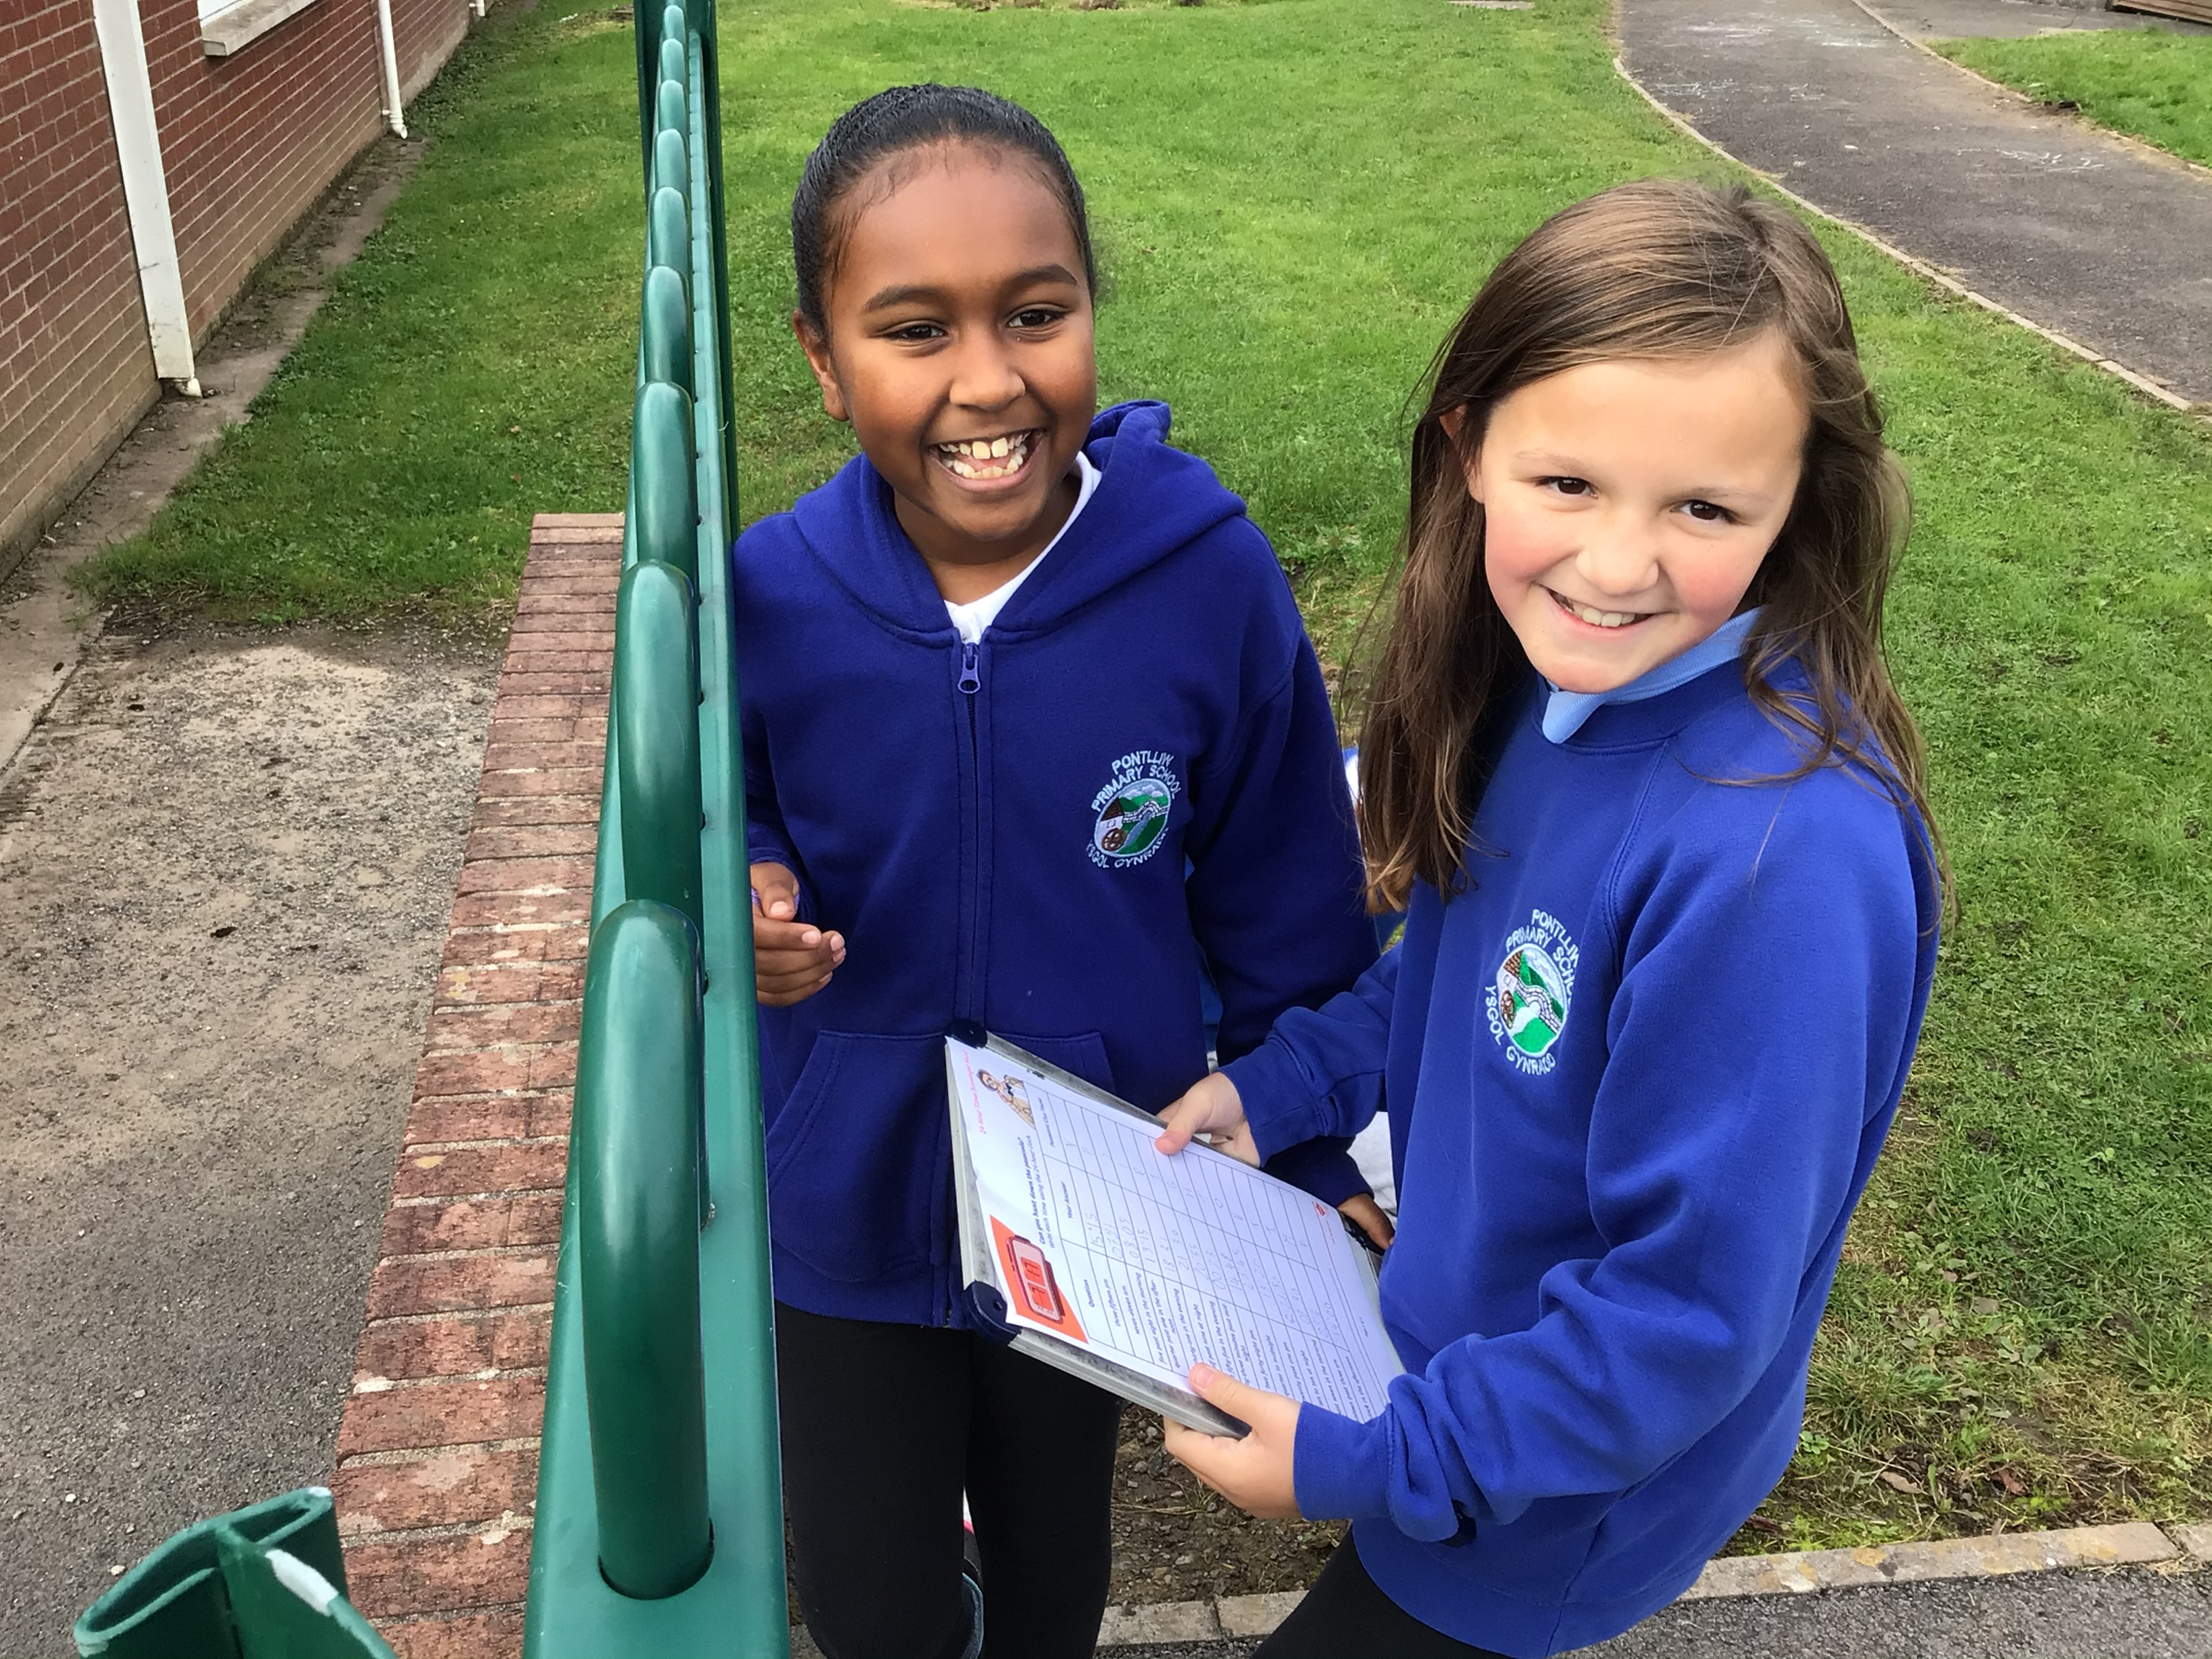 Converting between 12 and 24 hour time in Year 5!